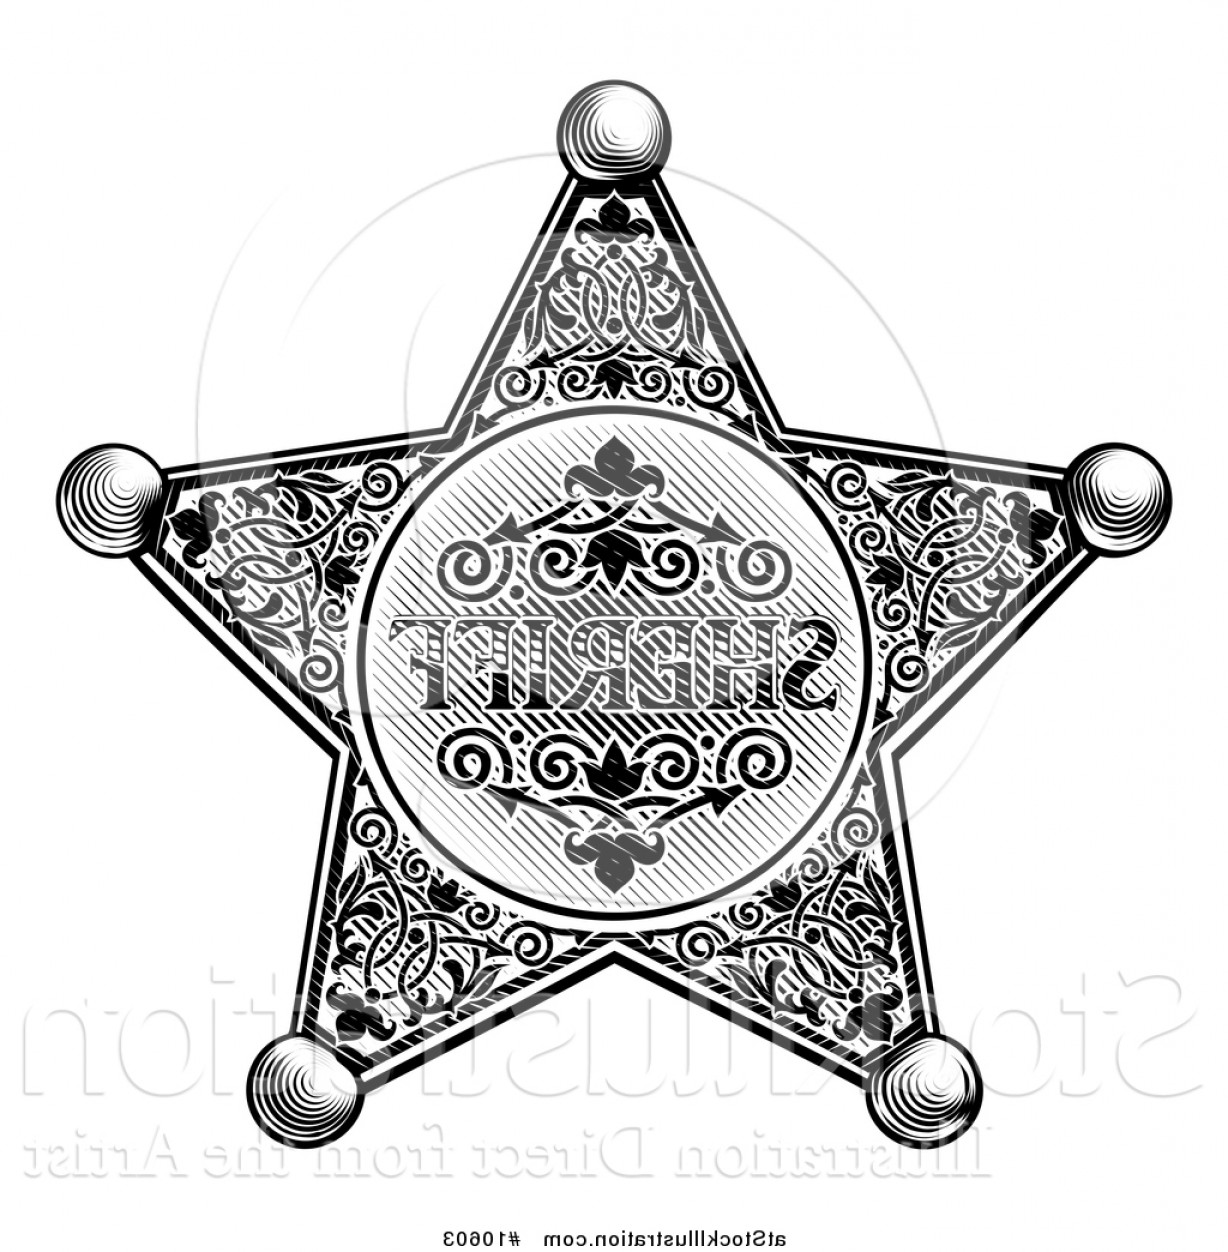 Star Badge Vector: Vector Illustration Of A Black And White Vintage Etched Engraved Sheriff Star Badge By Atstockillustration